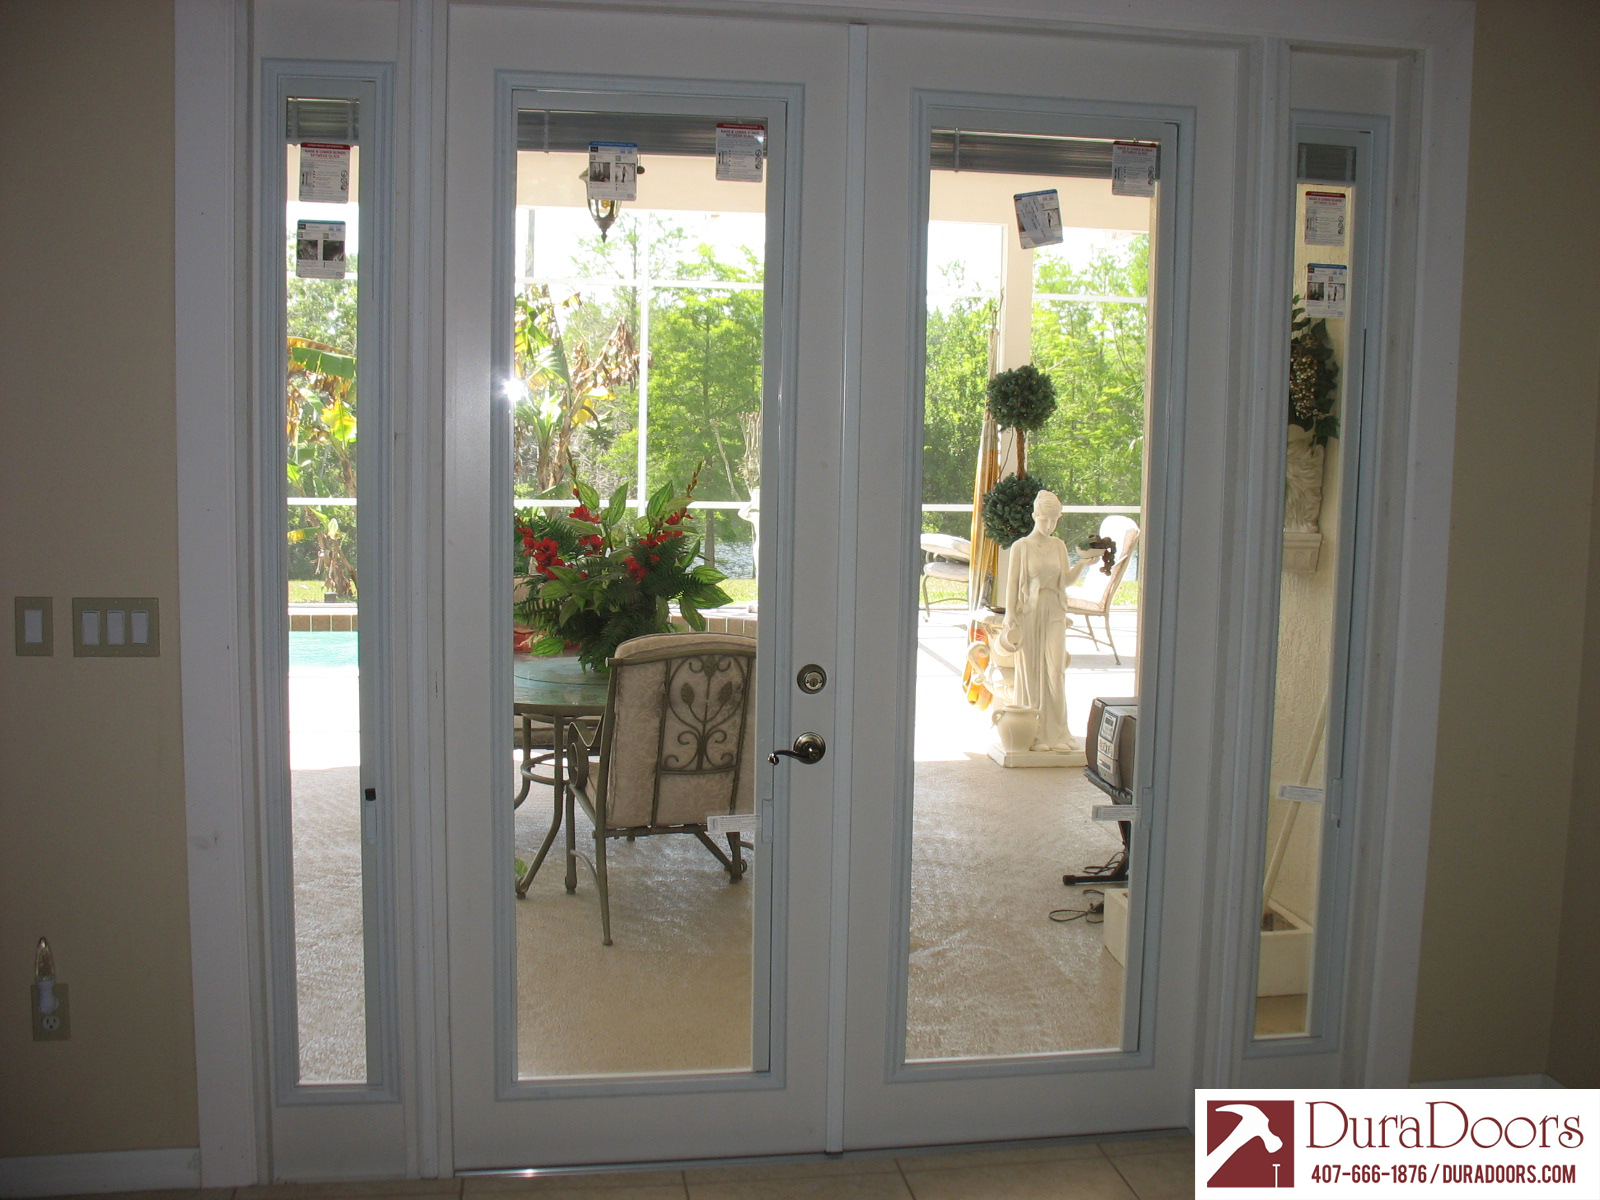 This Windermere FL customer had us replace their sliding glass doors with French doors. They selected the Plastpro French doors with ODL enclosed blinds. & French Doors with ODL Enclosed Blinds | DuraDoors